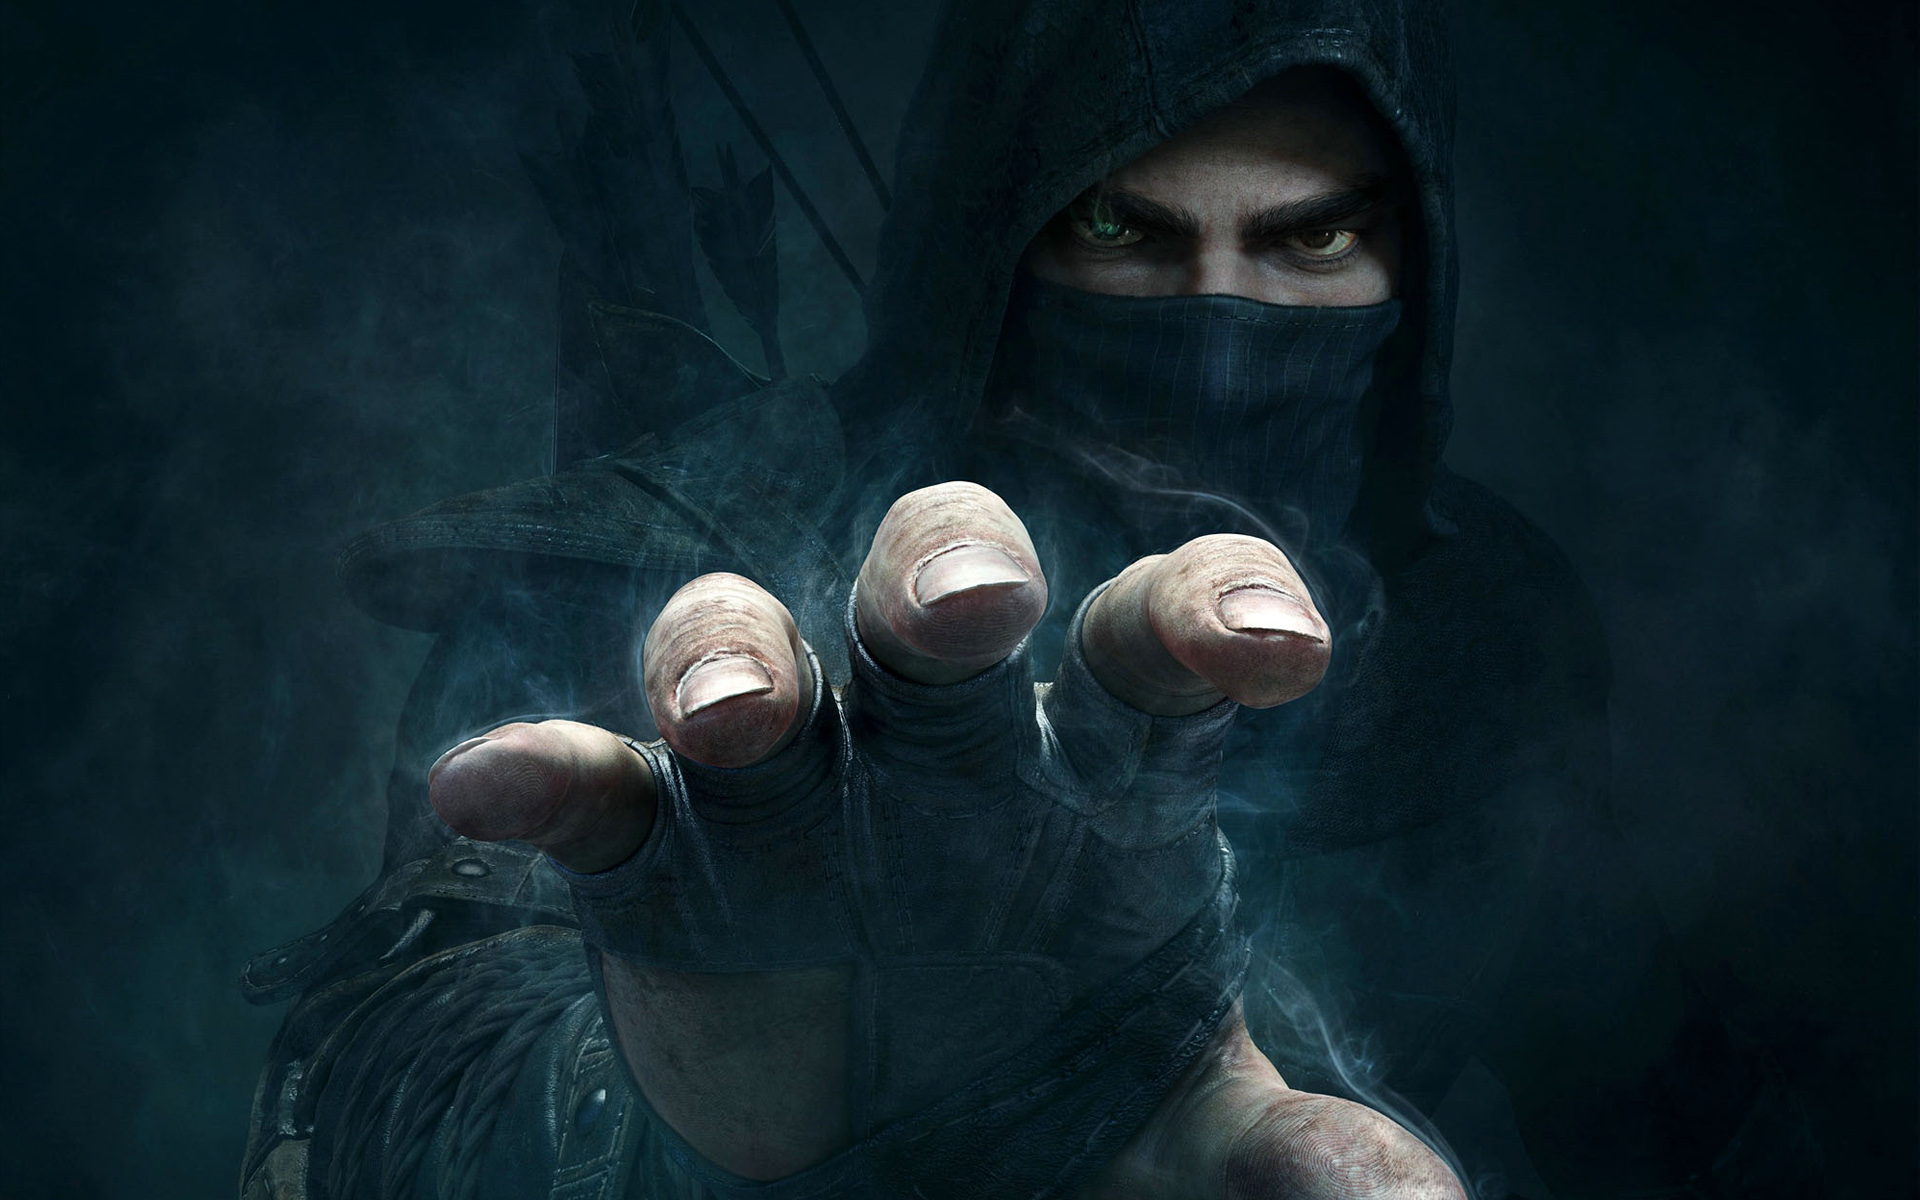 Thief Game Background Wallpapers, HD Thief Game Wallpapers.